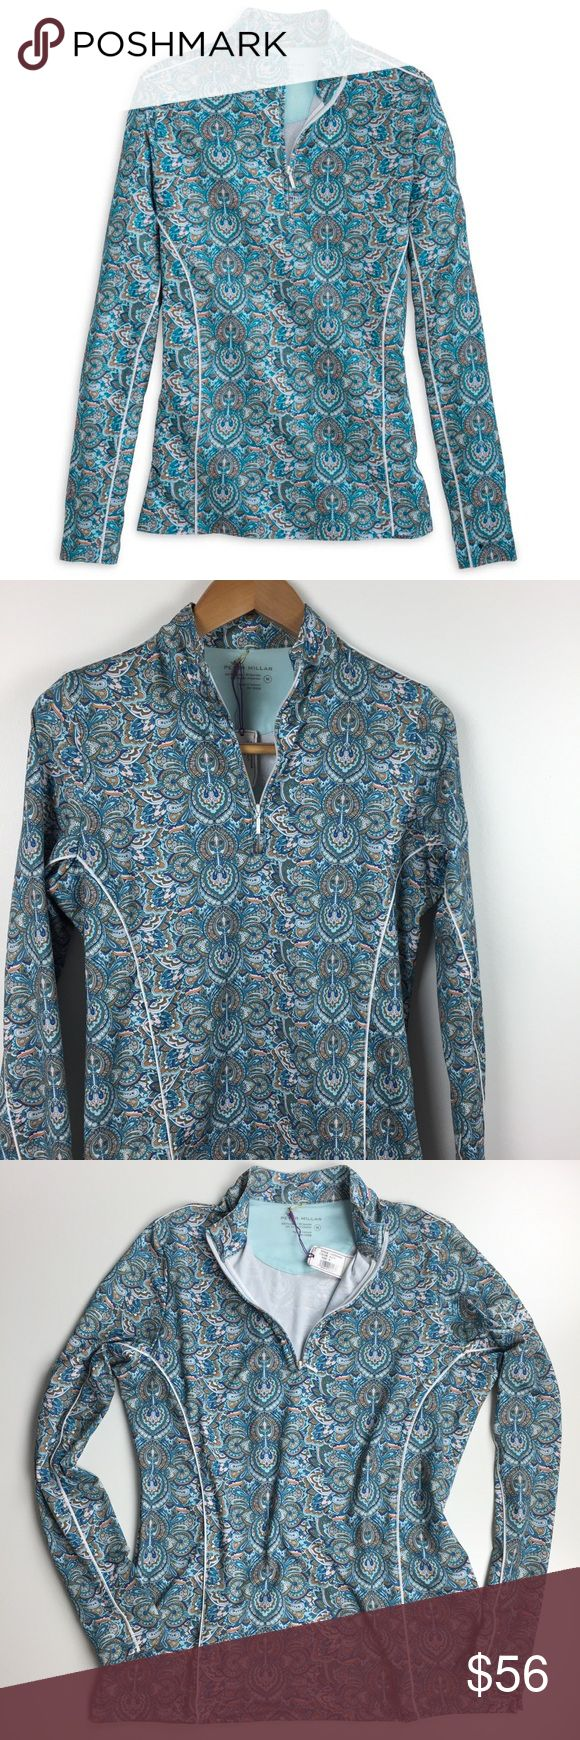 "NWT Peter Millar Sun Comfort Zip-Neck Pullover Peter Millar paisley pullover. Built-in sun protection UPF 50+. Moisture wicking. Opaque. Extremely breathable and comfortable to wear on sunny days. Beautiful blue paisley print. Bust 39"". Perfect golf pullover! Peter Millar Tops"